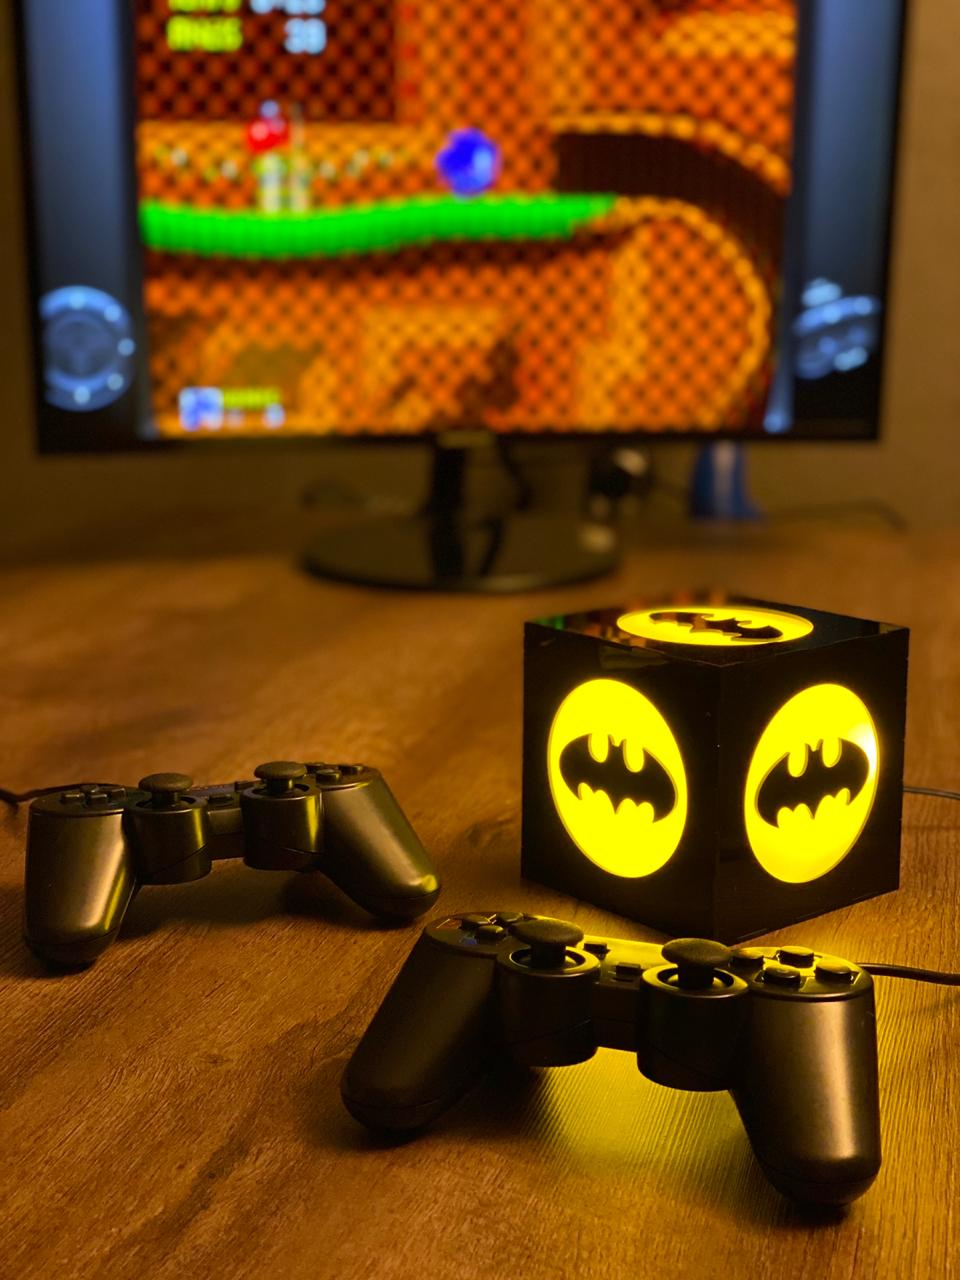 Cubo Retrô Box Batman: Fliperama Arcade Game (20.000 Jogos) PlayStation/Nintendo/SNES/Mega Drive/Sega Saturn